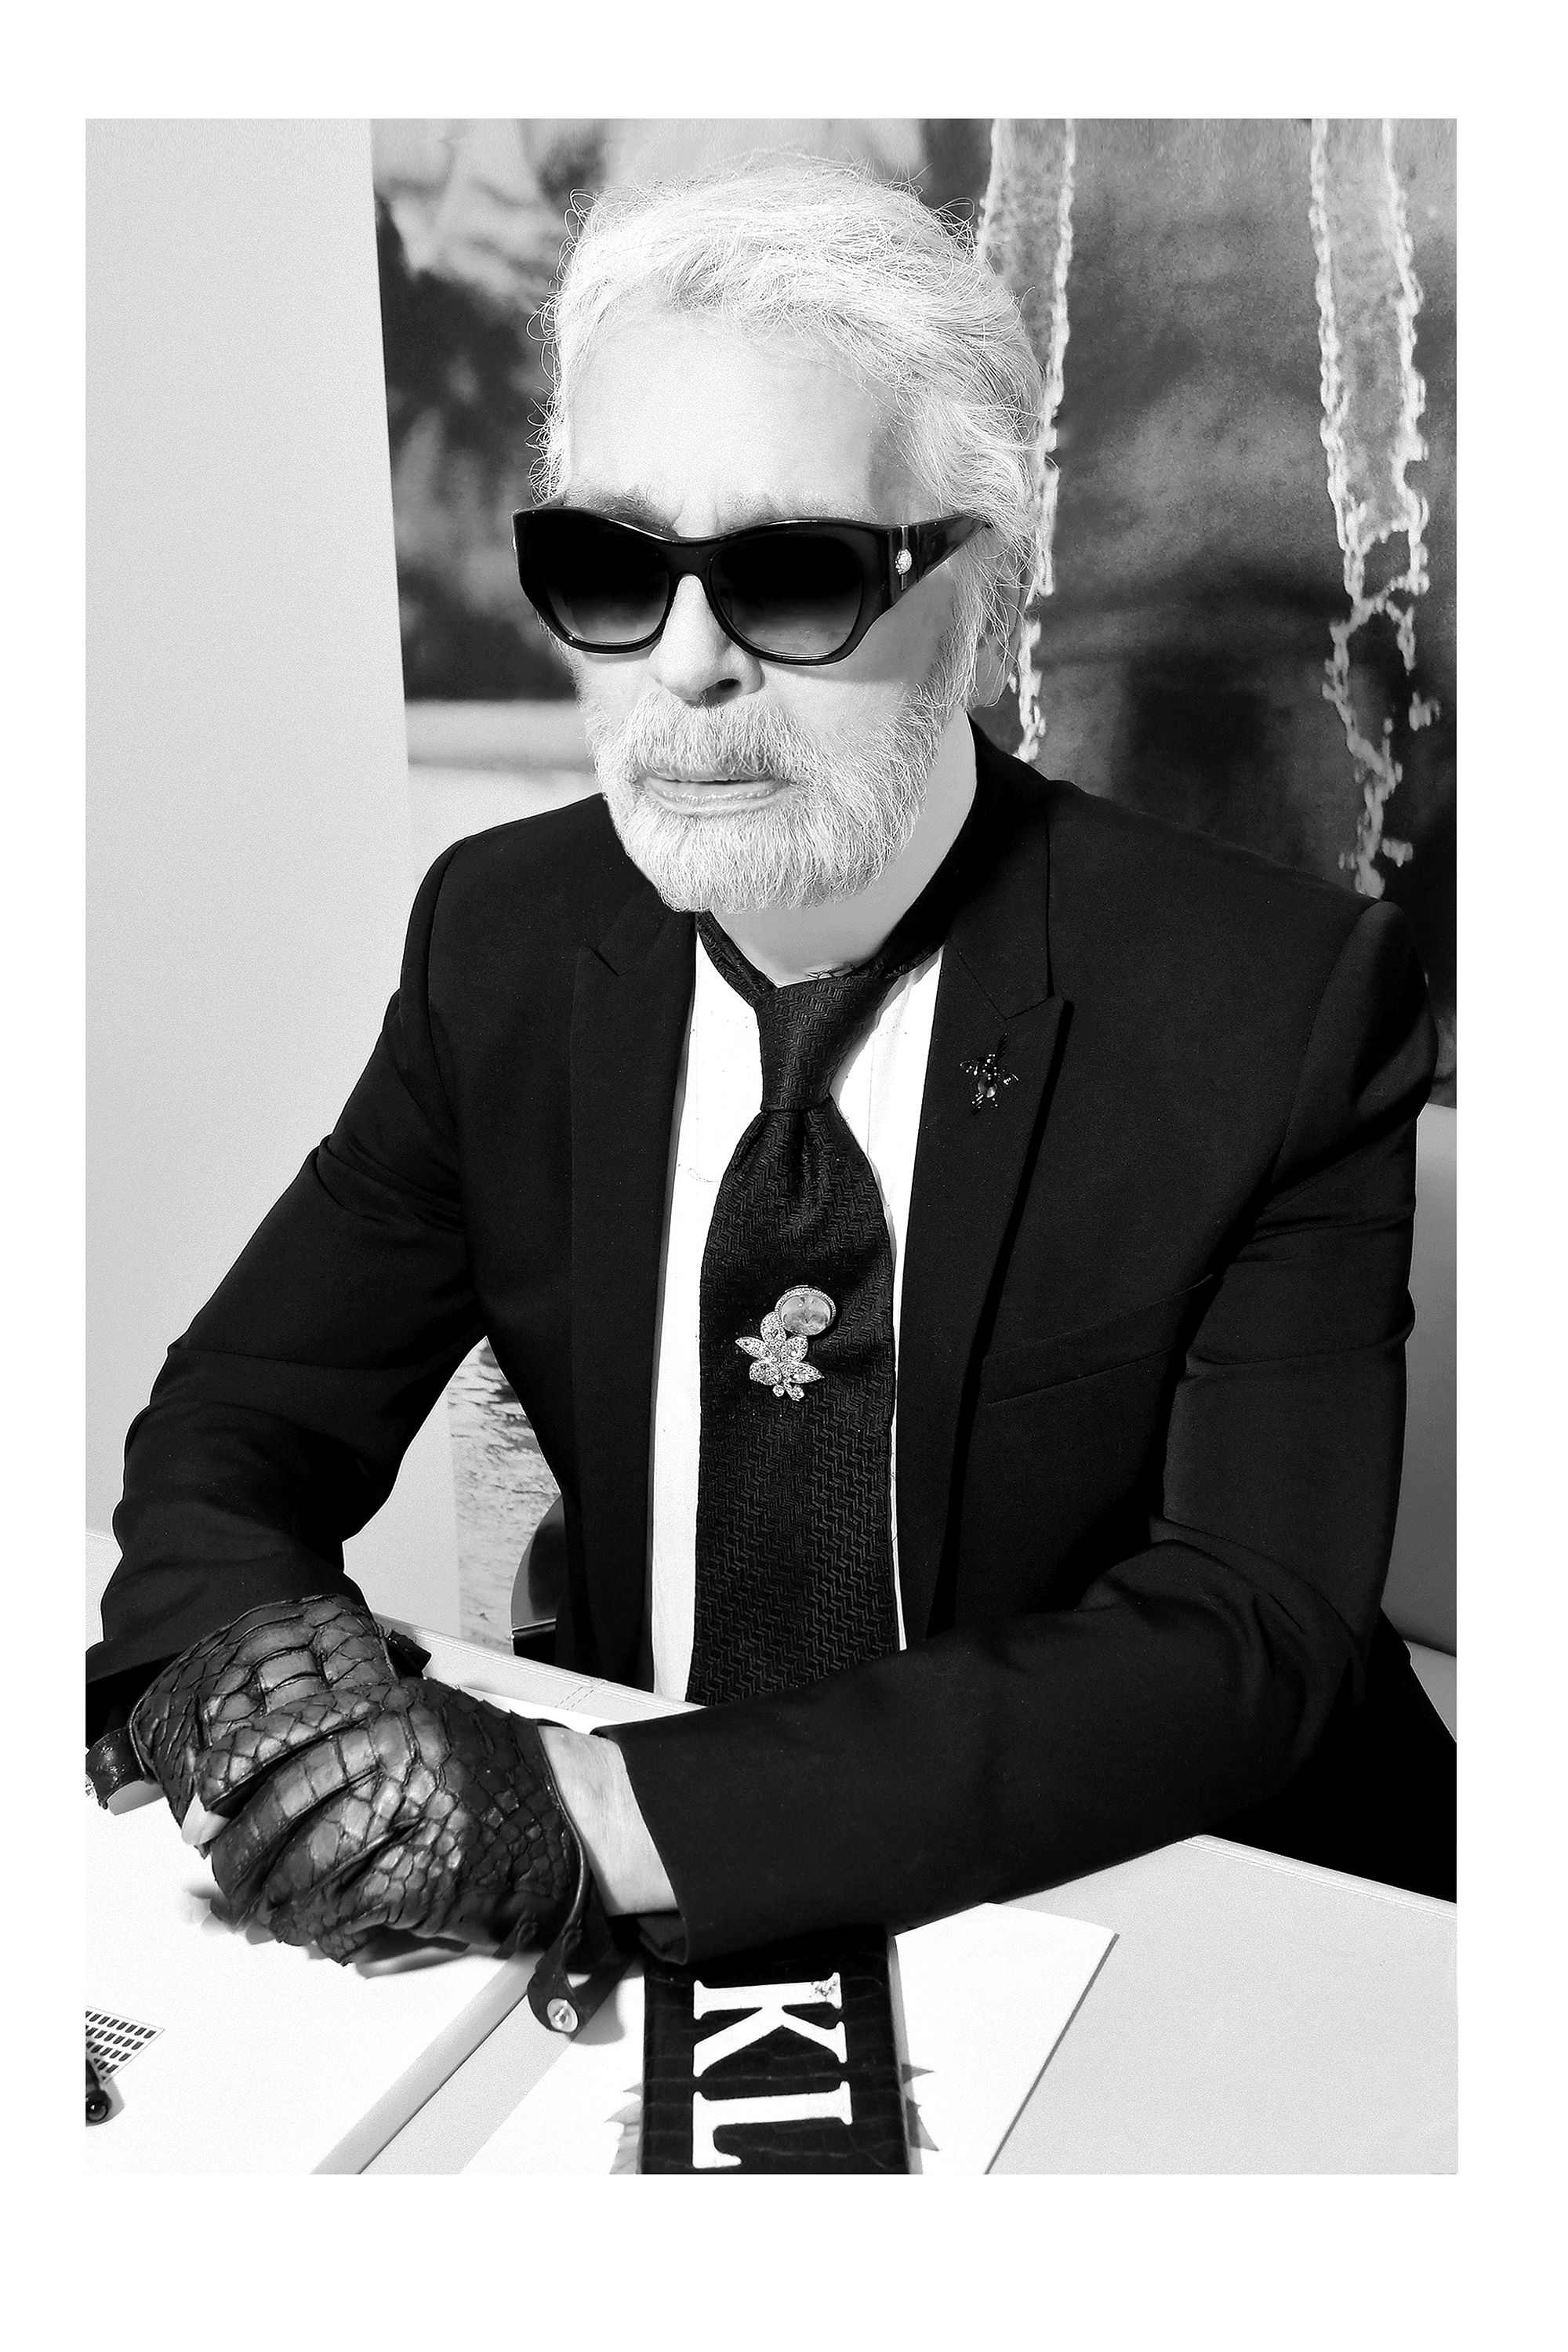 The house of Karl Lagerfeld pays tribute to late designer with celebrity collaborations